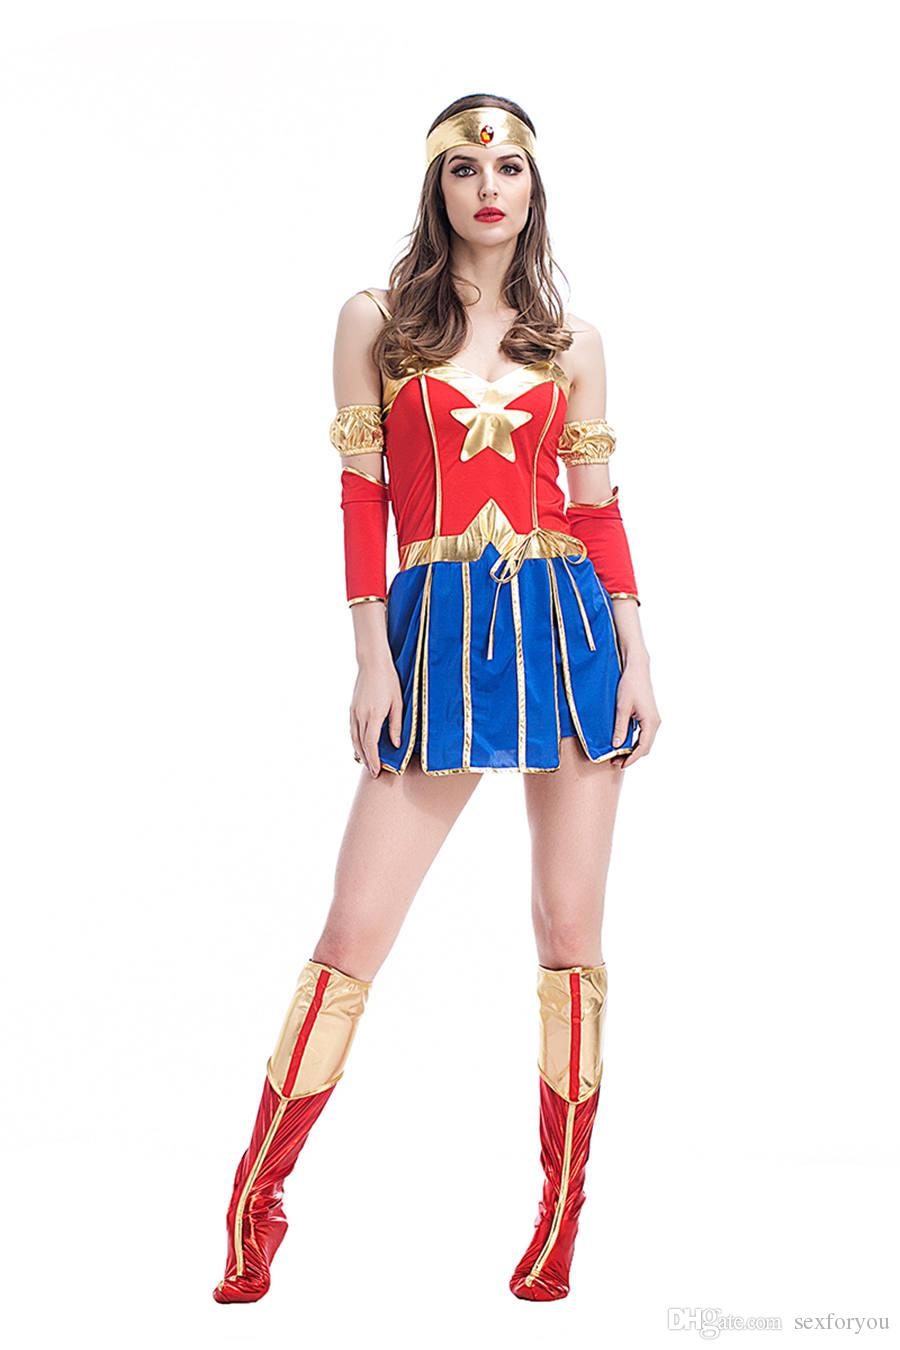 Adult Women Halloween Superhero Wonder ladies Costume Short Sexy Sleeveless Dress Fancy Cosplay Outfit Clothing Set For girls